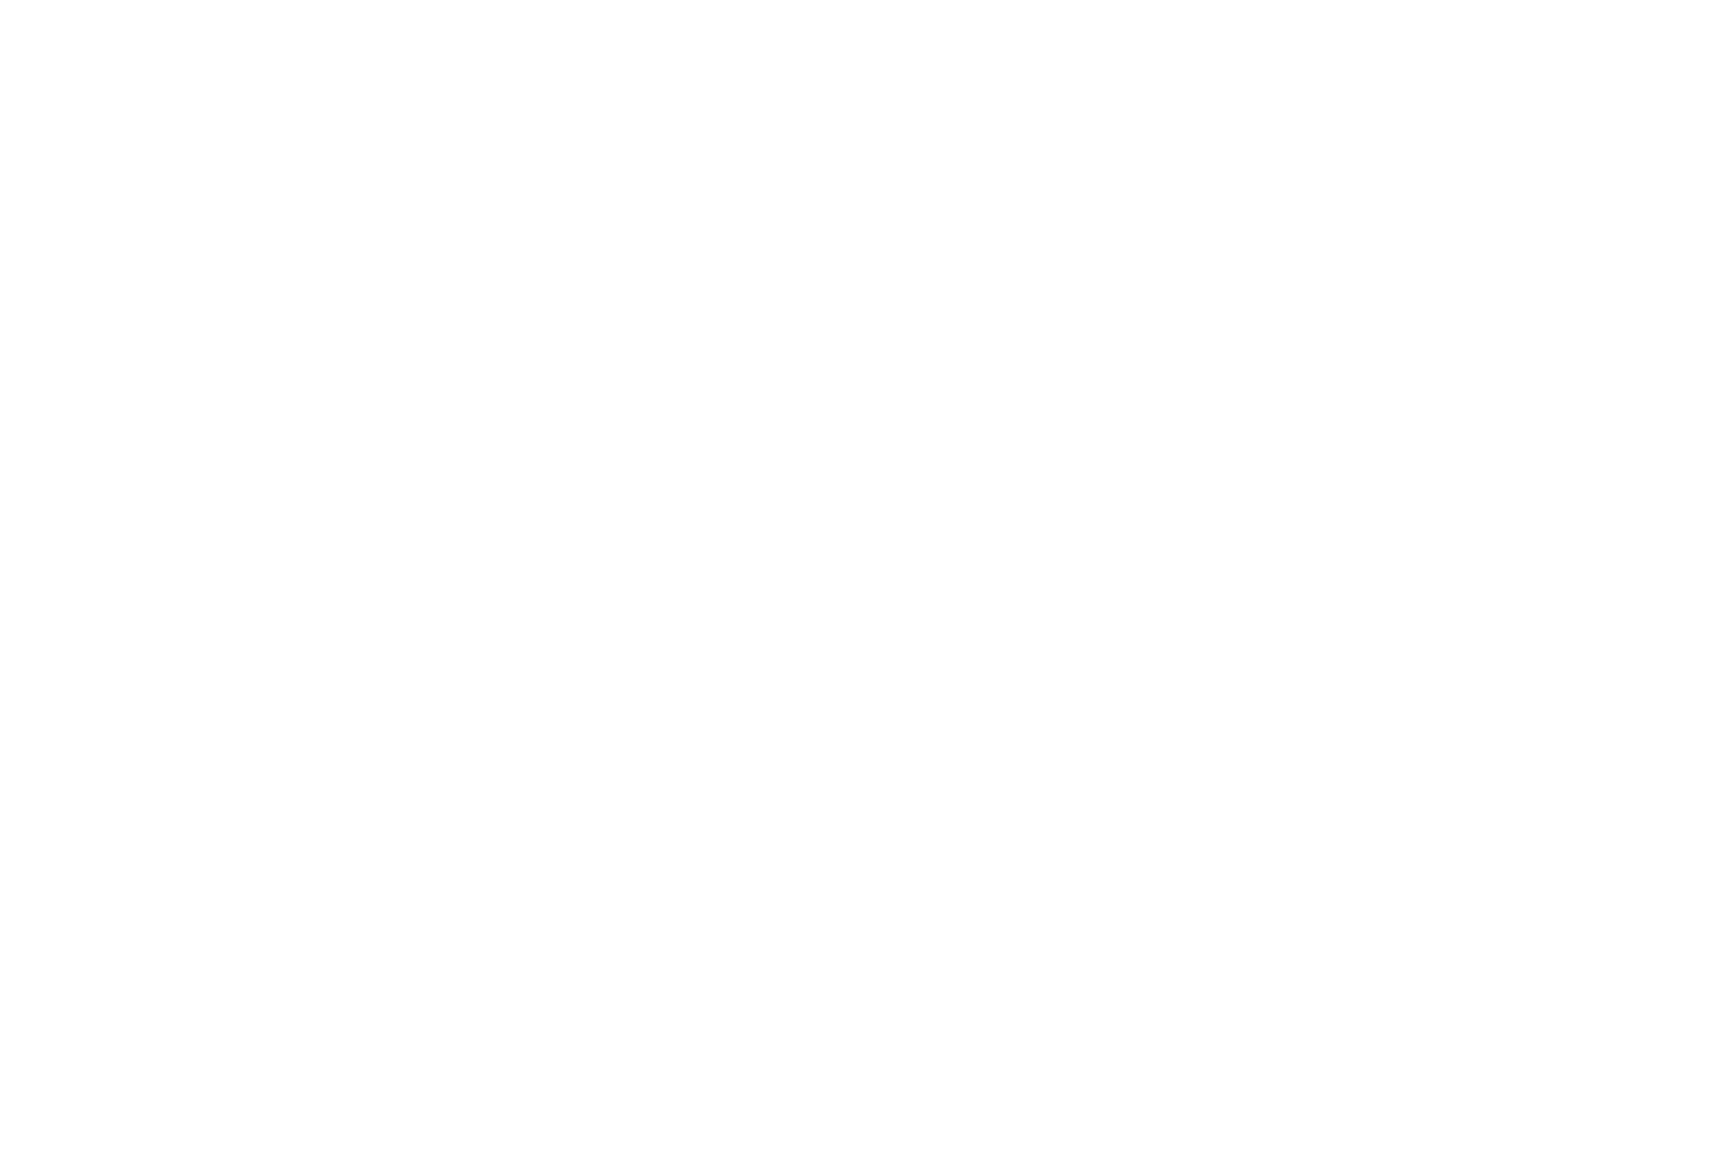 OFFICIAL SELECTION - Top Indie Film Awards - 2018.png